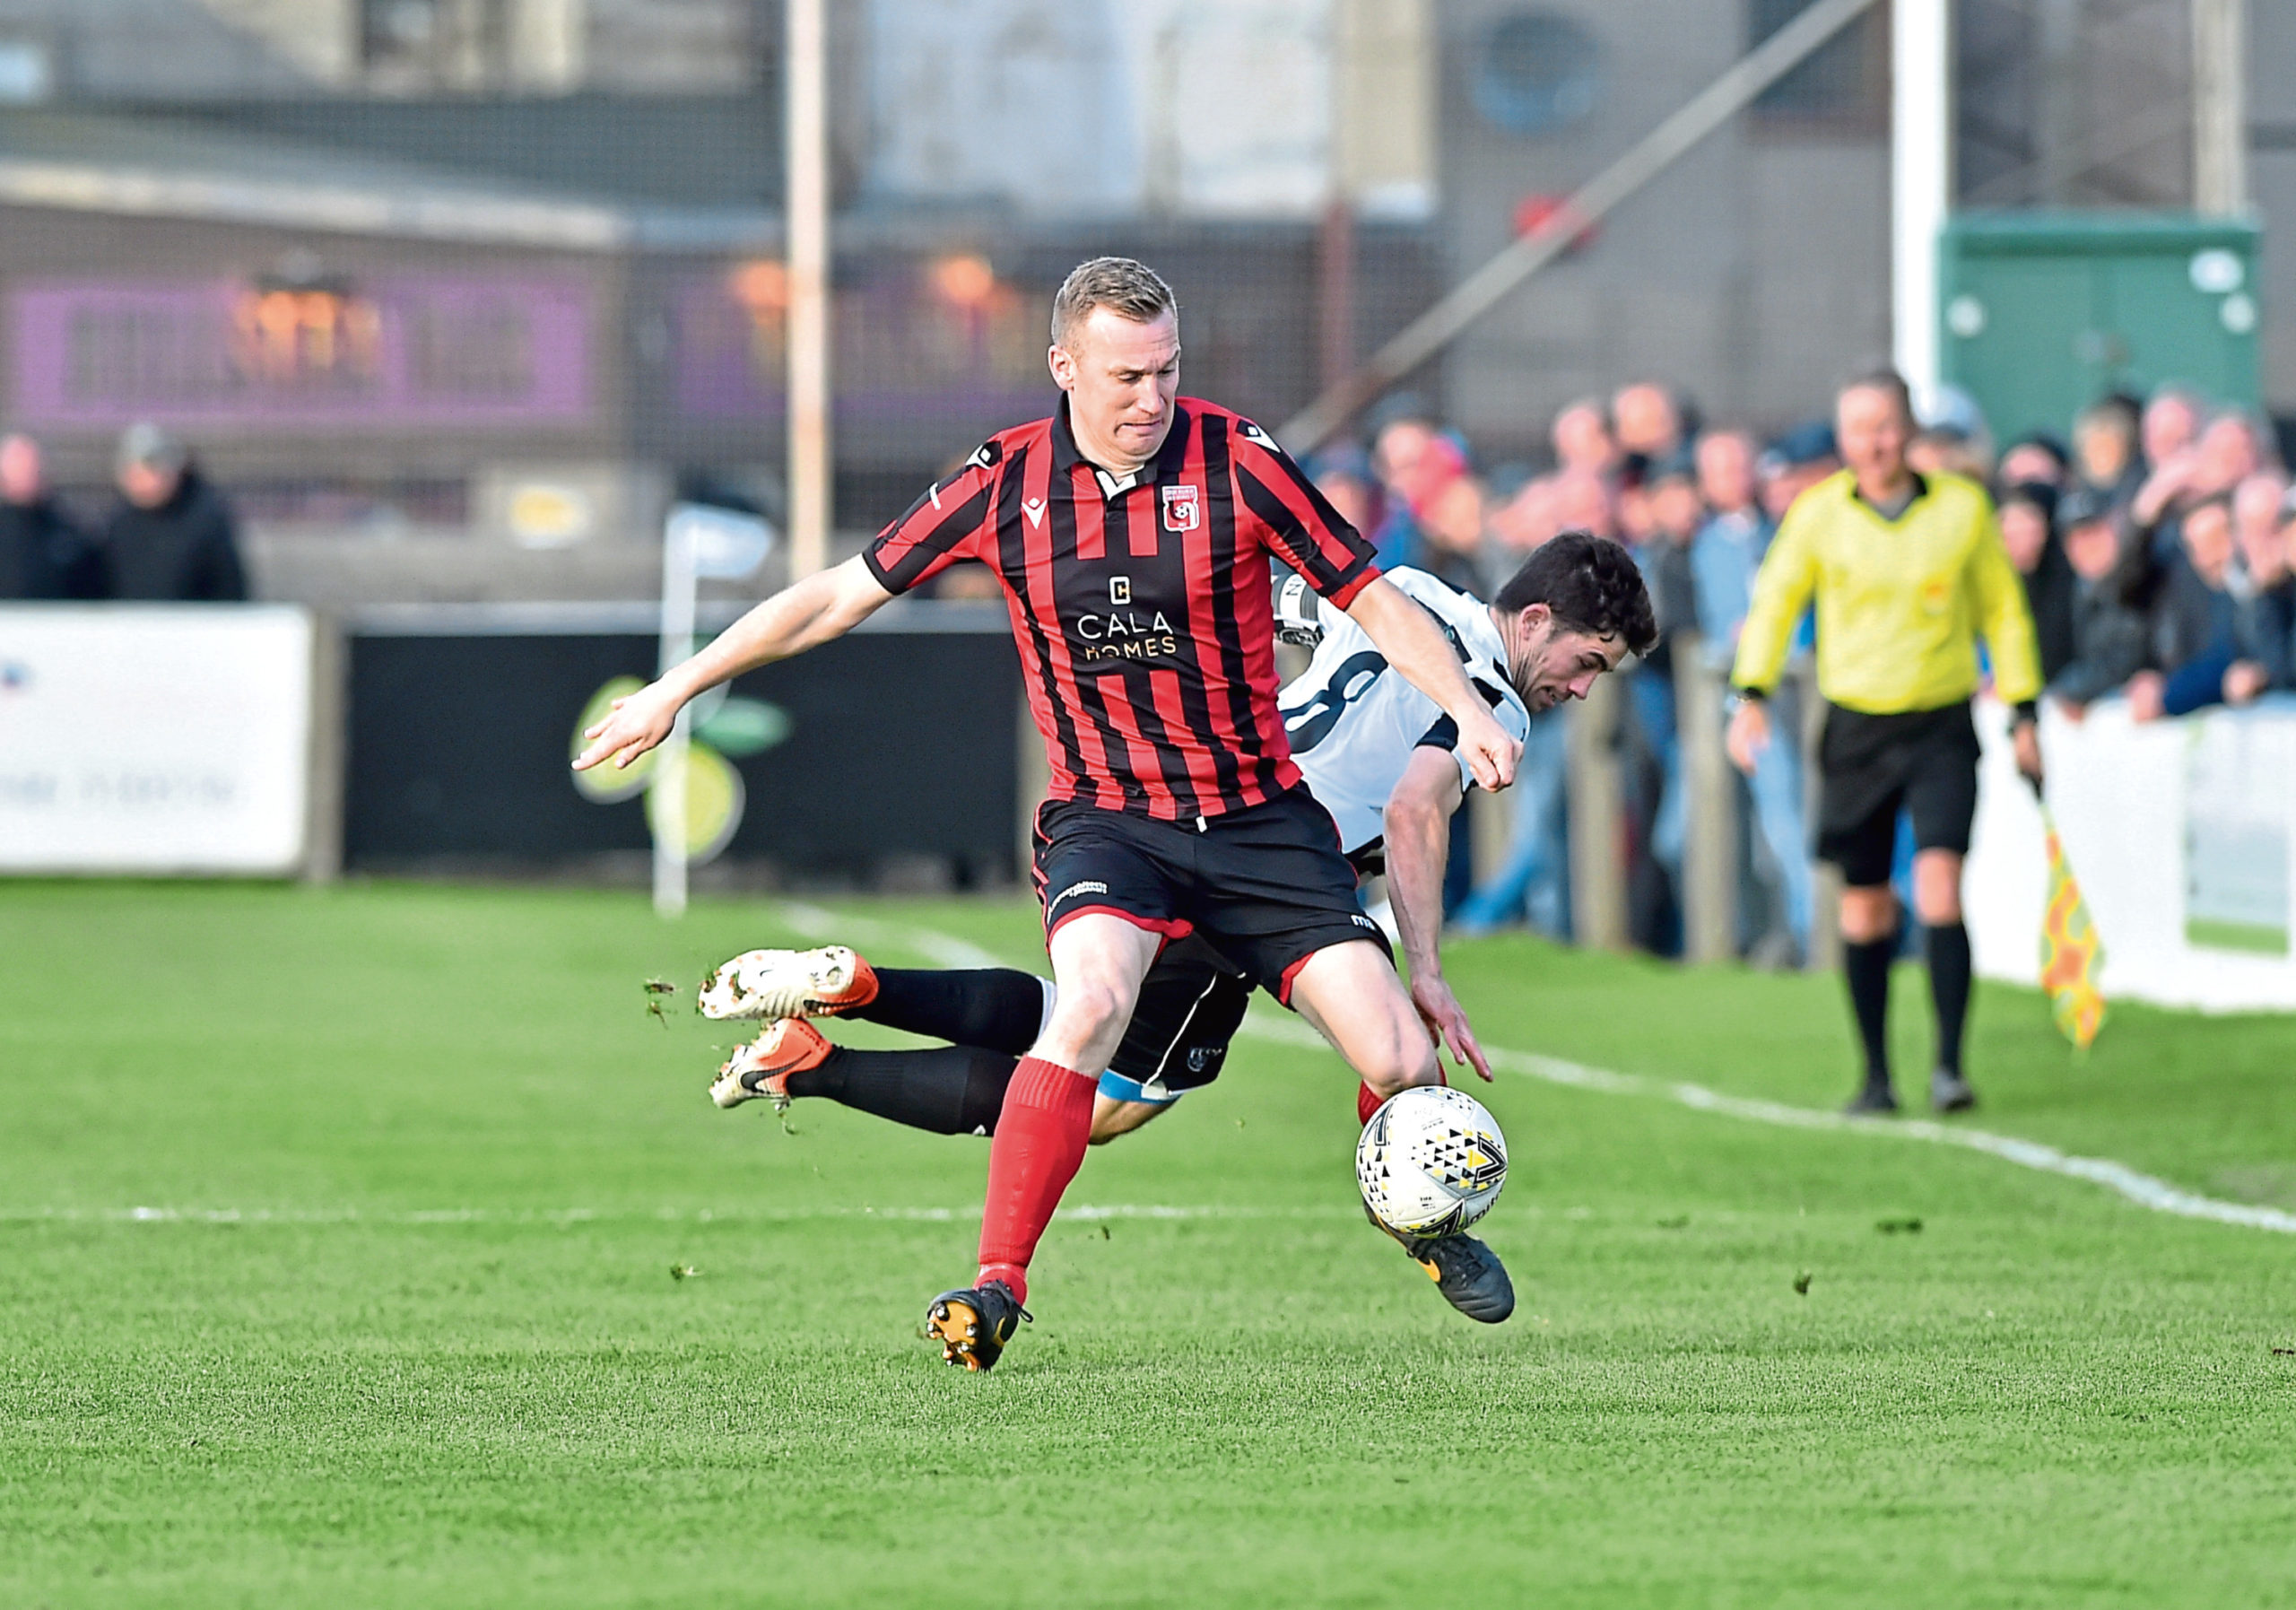 Eric Watson playing for Inverurie.